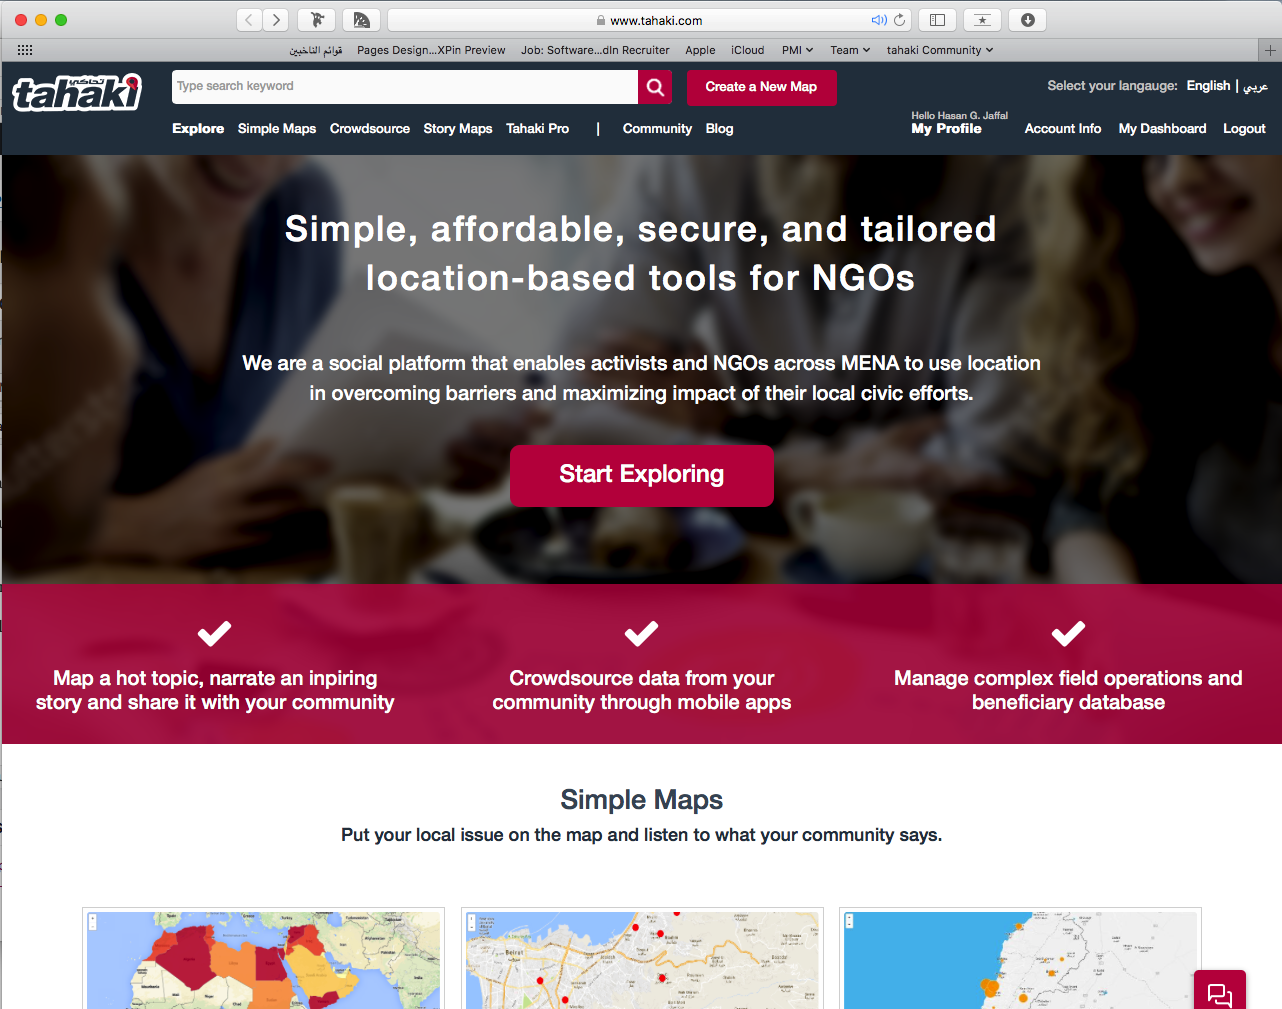 How can I create a simple map from scratch? - tahaki Pro